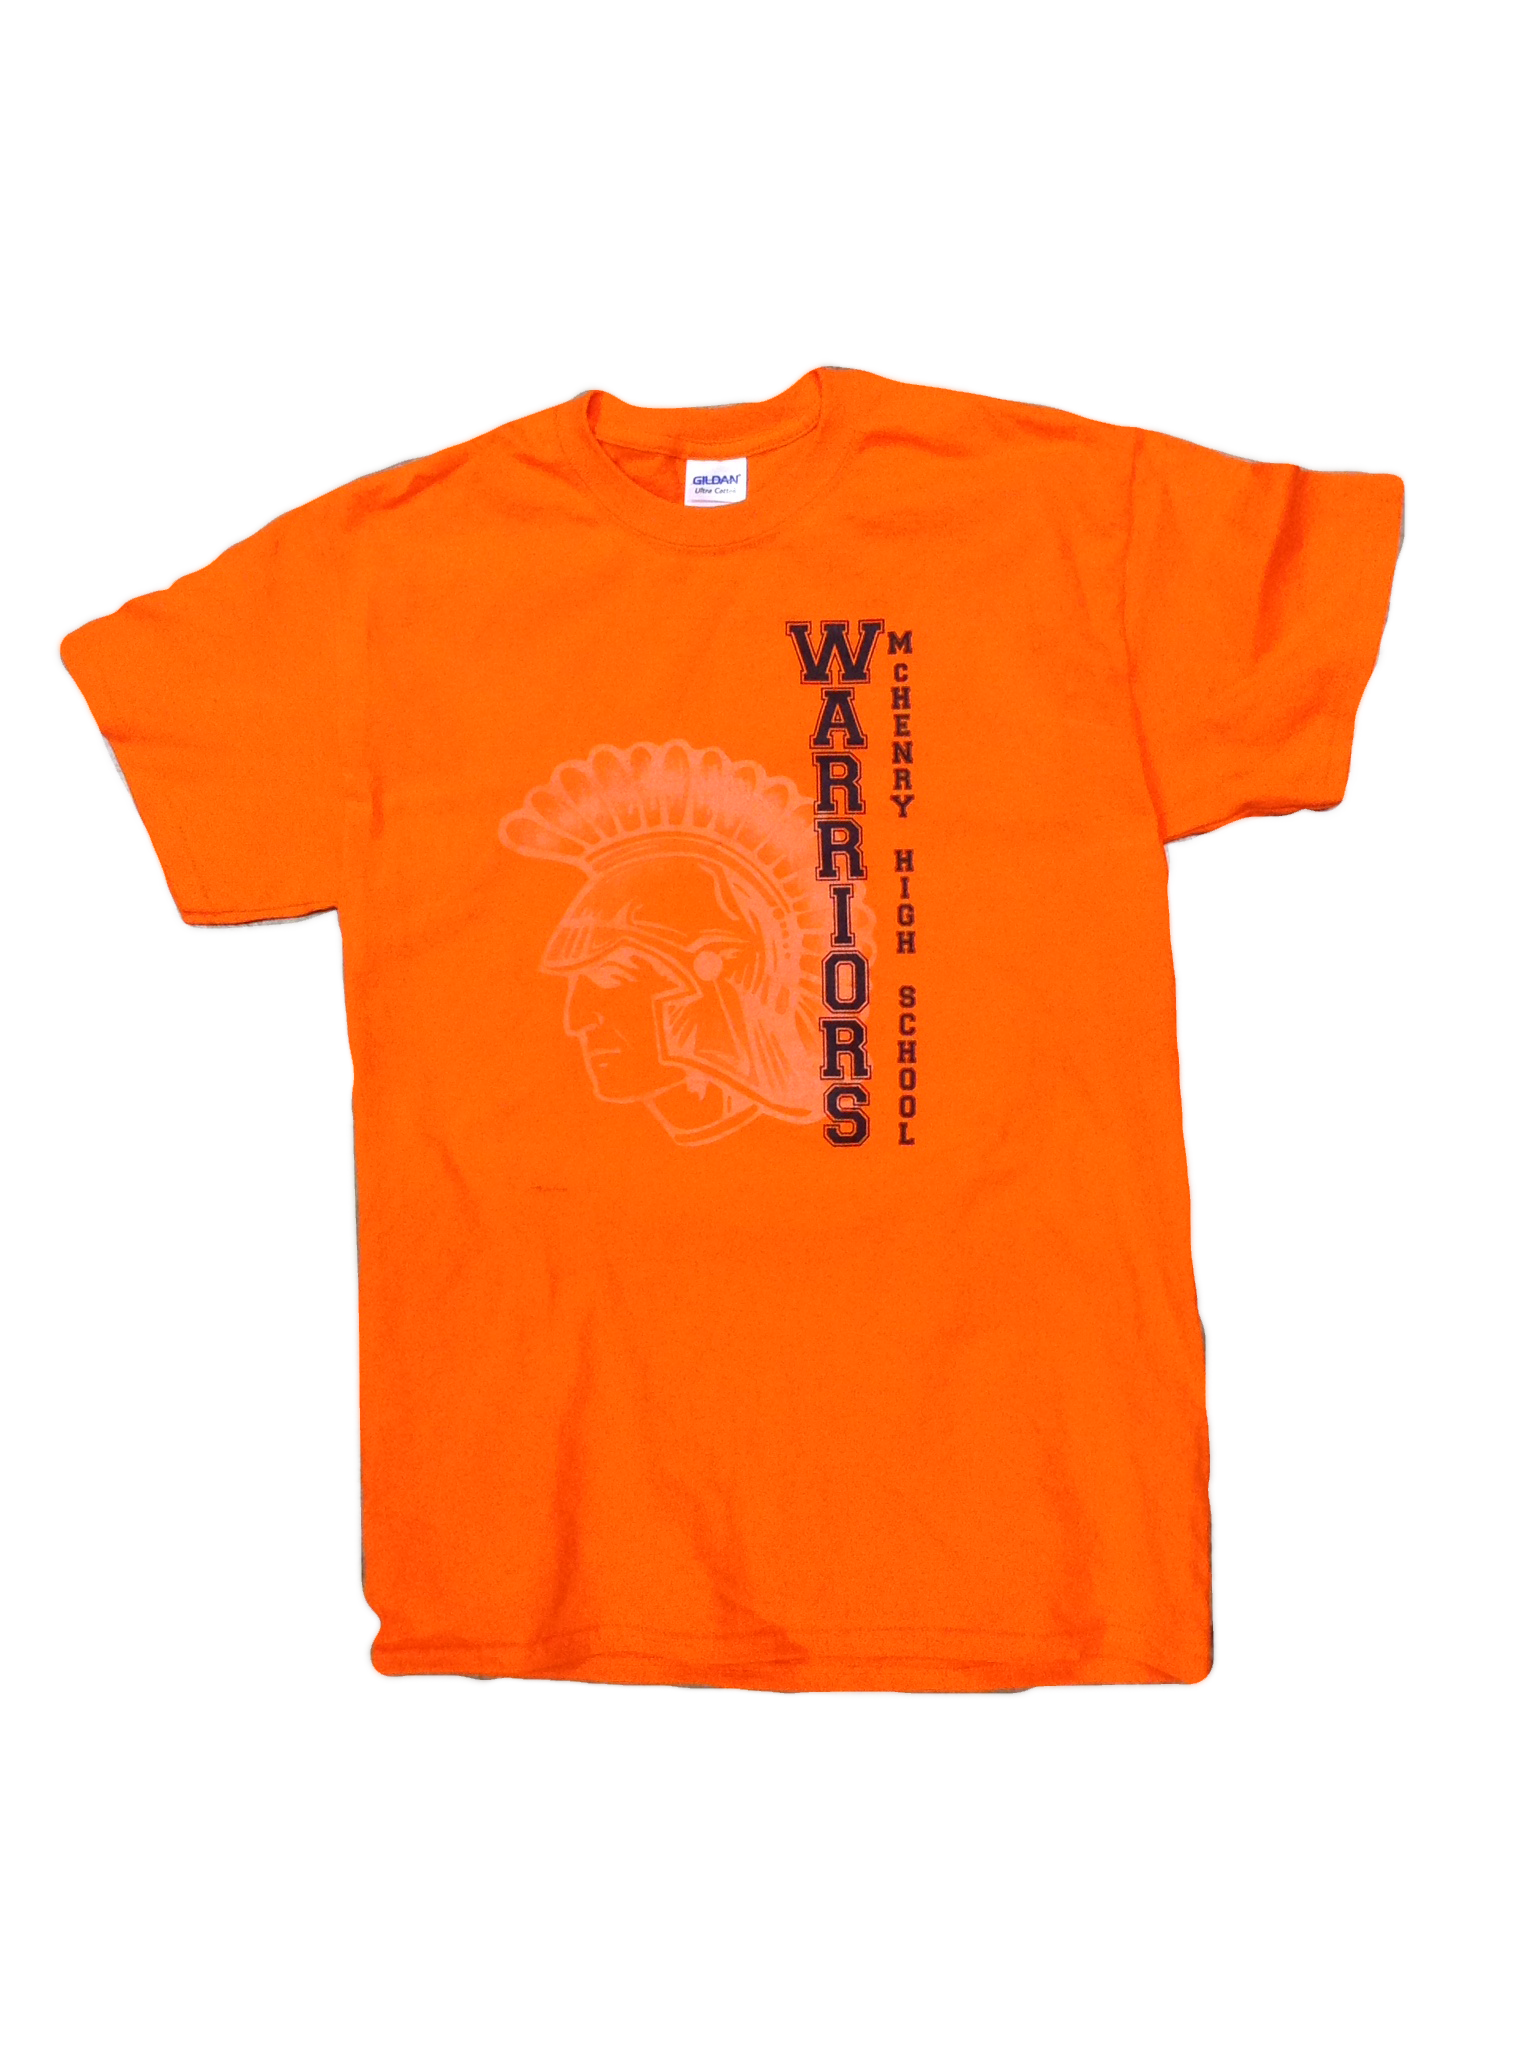 Warrior Orange Shirt